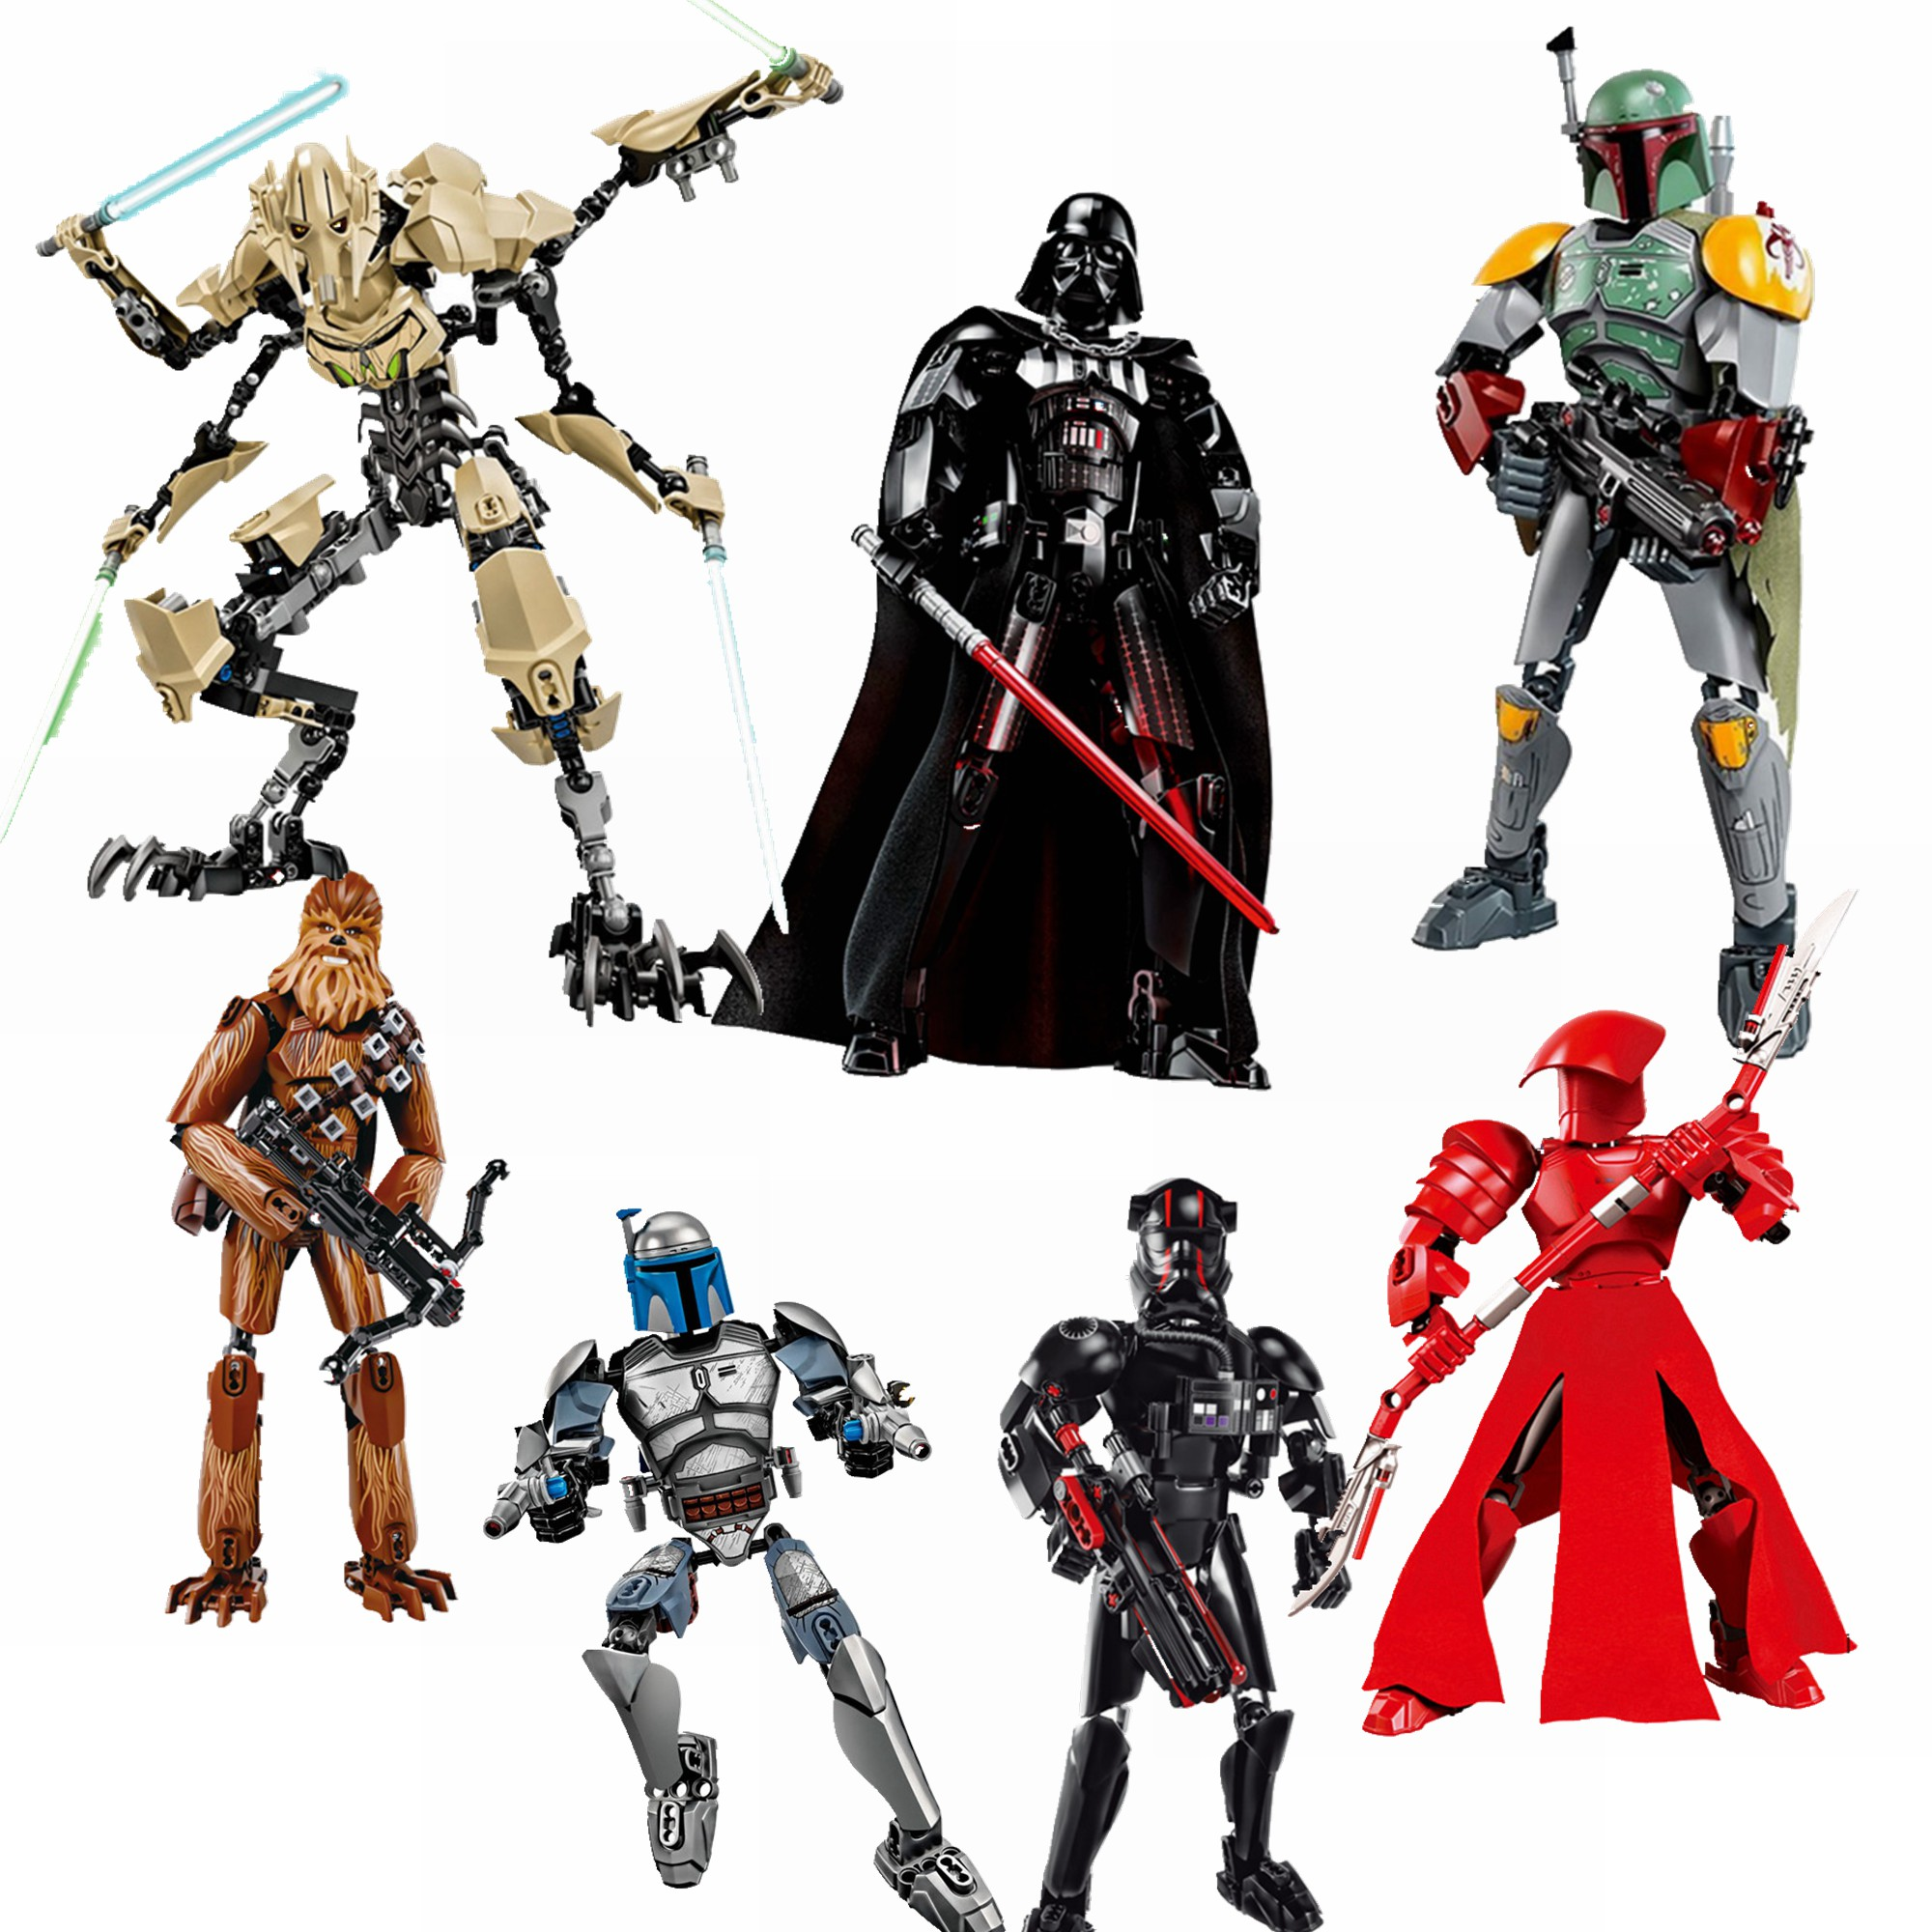 legoing-star-wars-elite-praetorian-guards-darth-vader-general-grievous-building-blocks-toys-for-children-legoing-font-b-starwars-b-font-75528